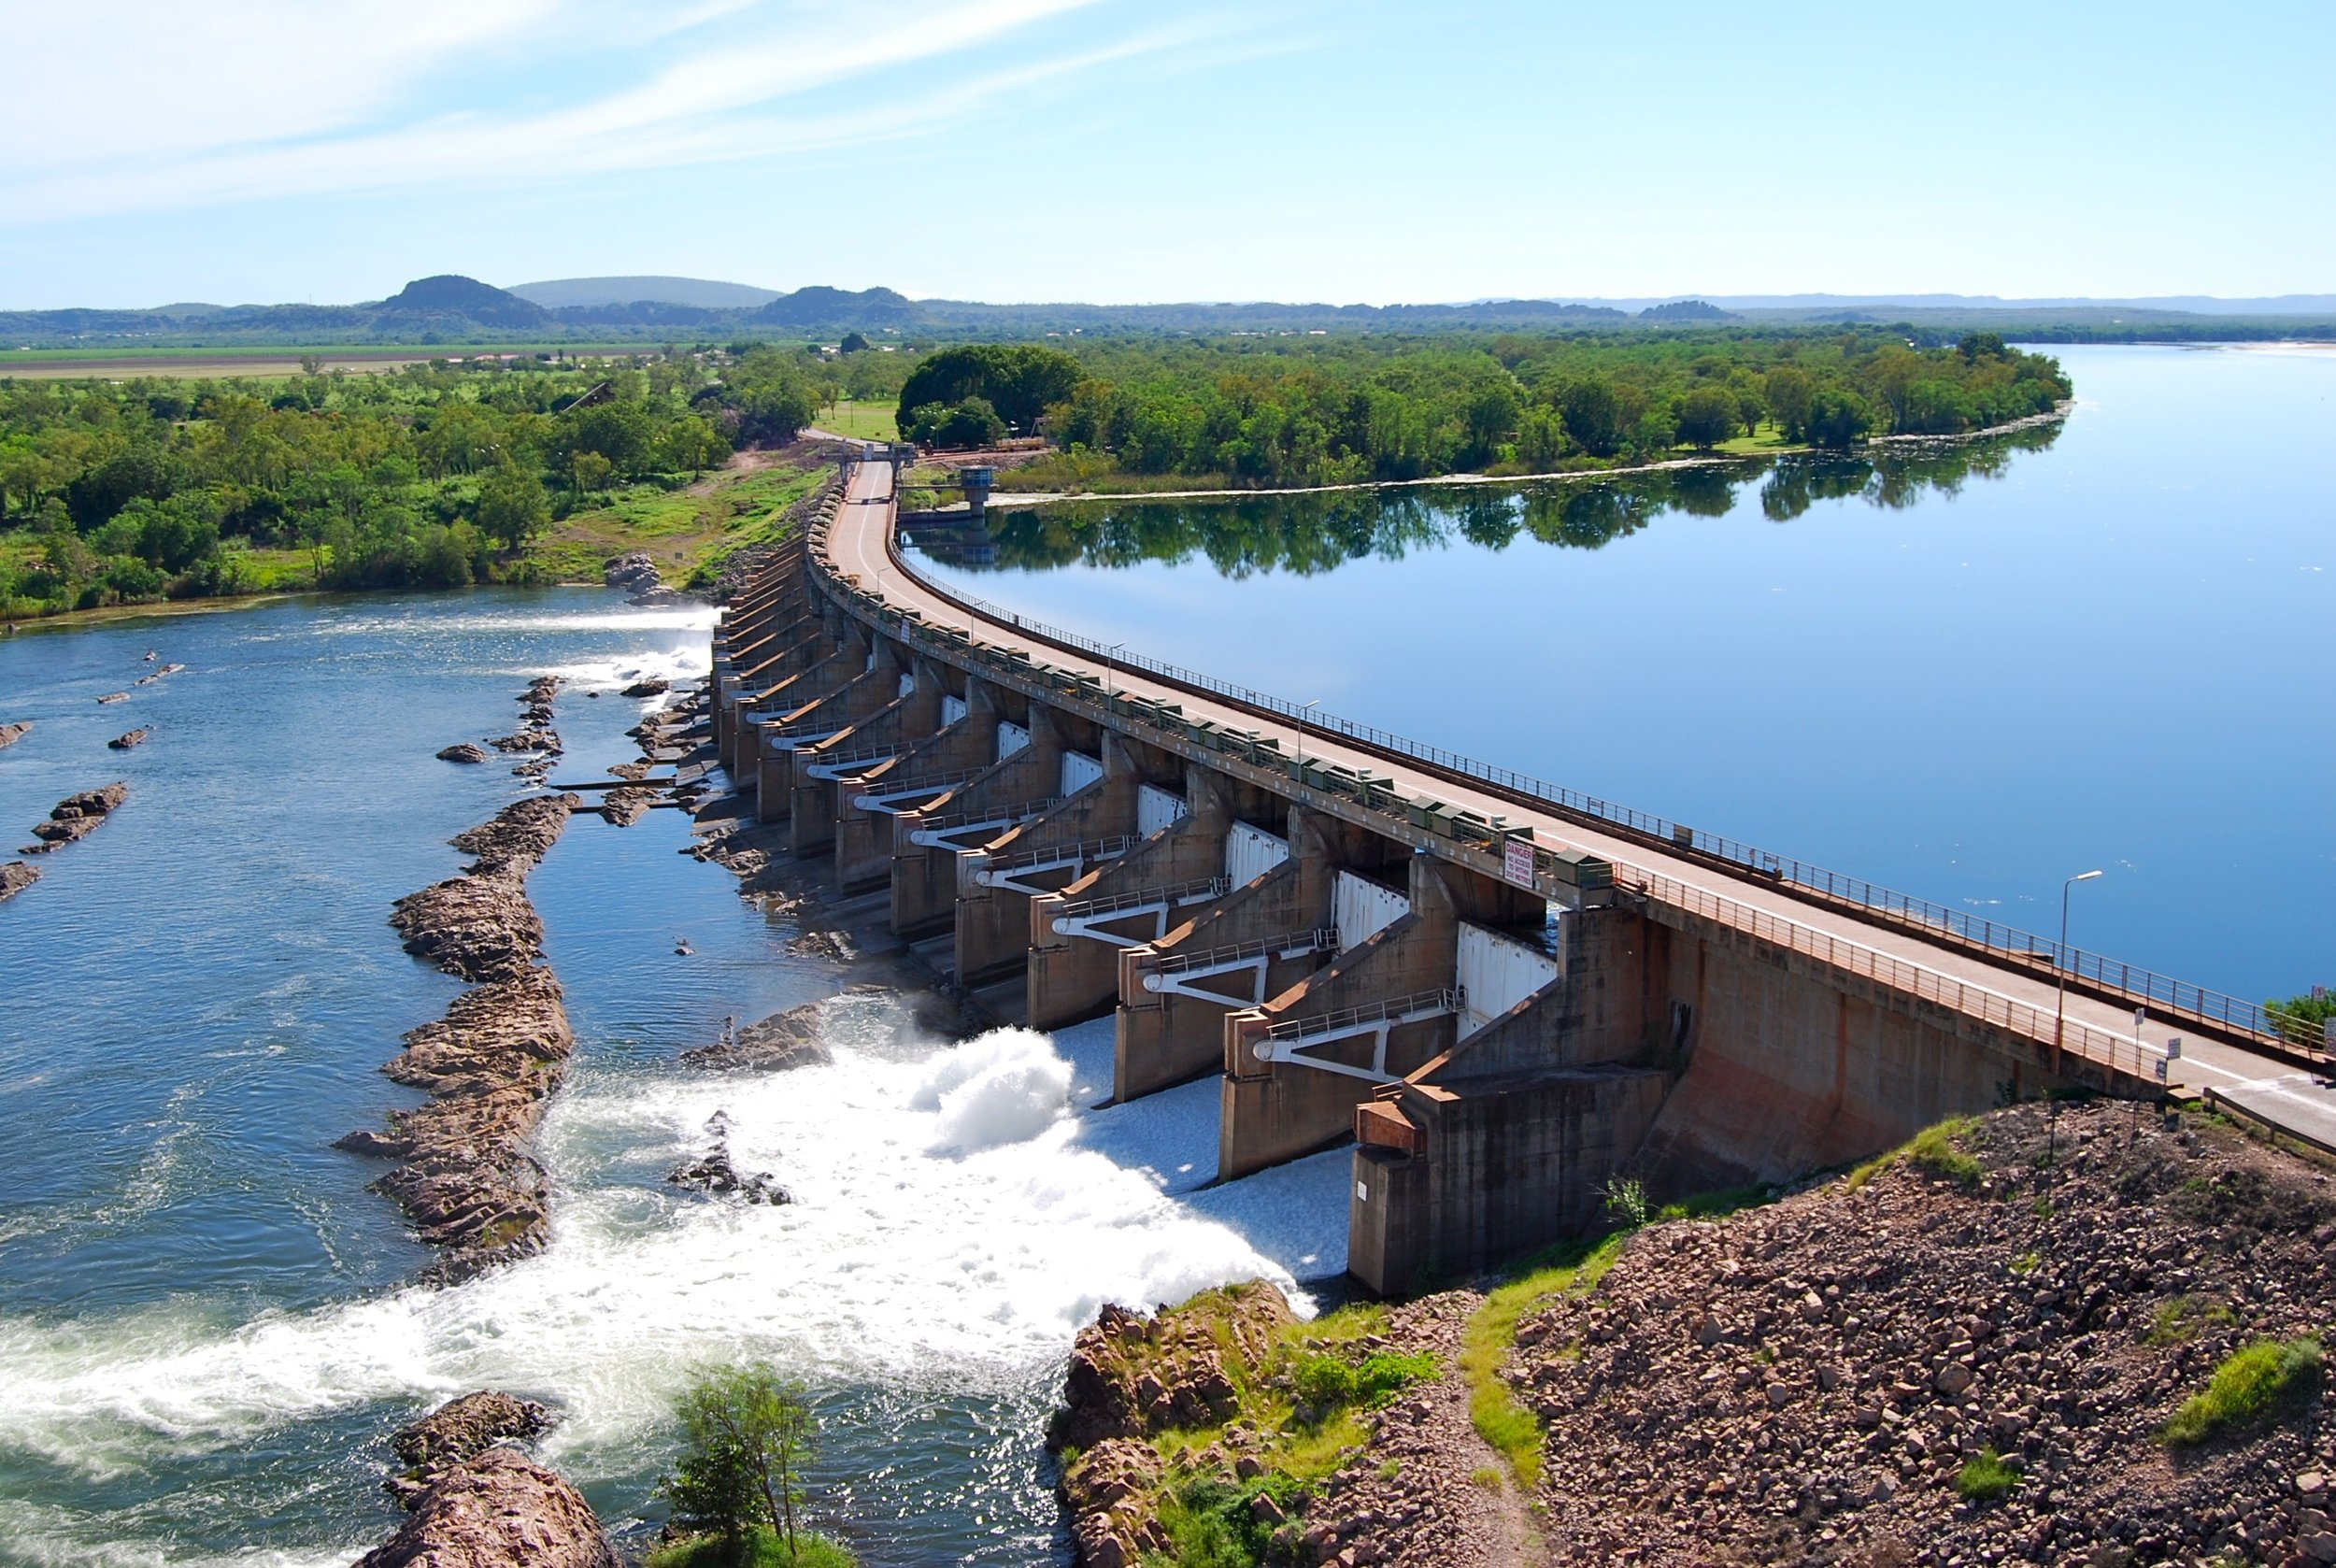 Kununurra's Diversion Dam, separating the Upper Ord (right) from the Lower Ord (left)